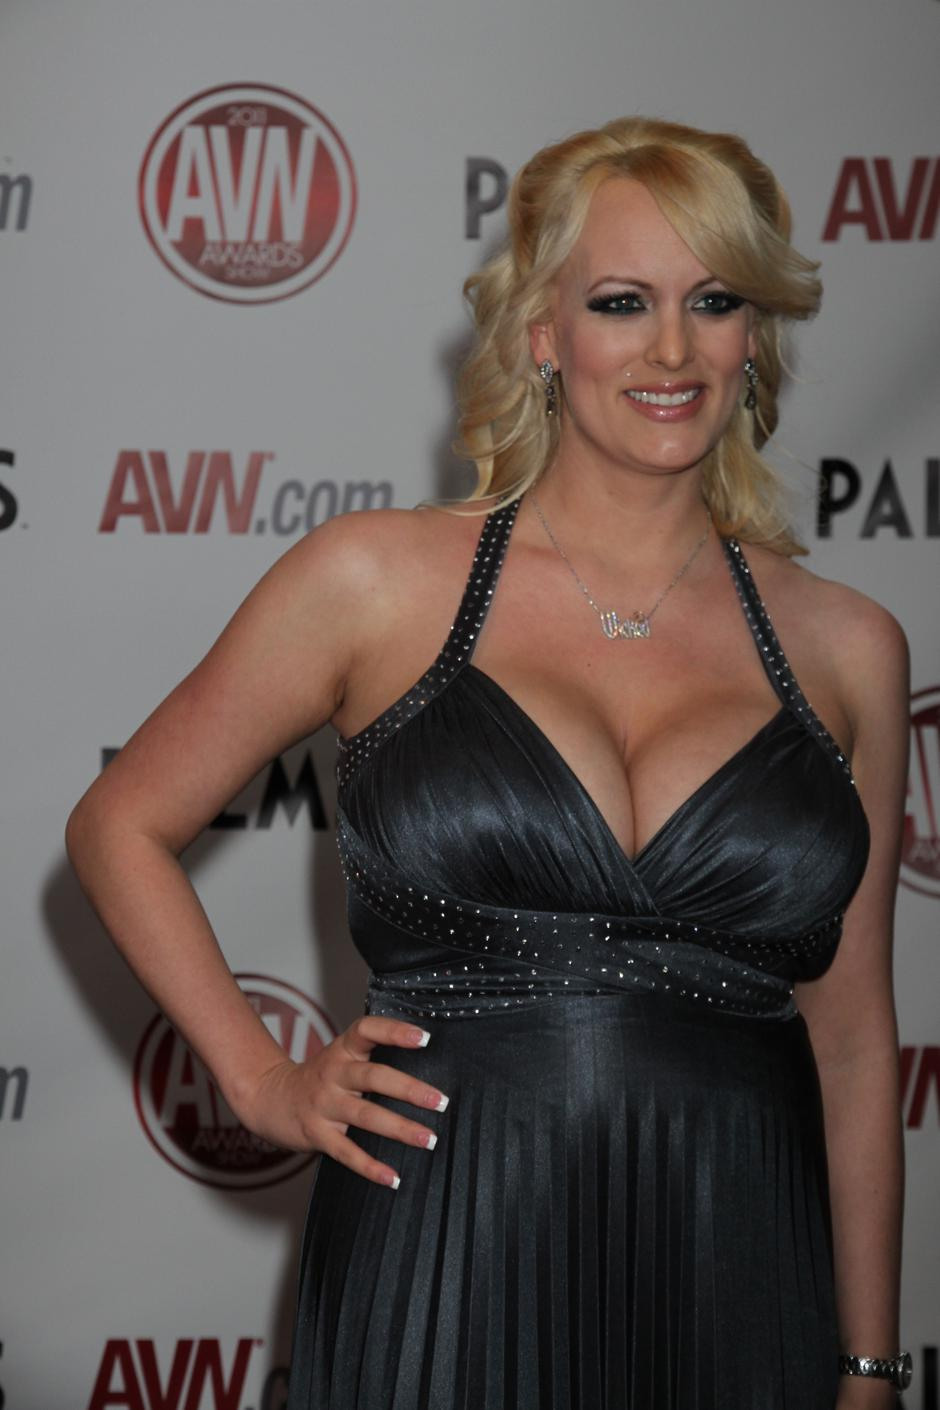 AVN Awards 2011 - Las Vegas | Autor: AJM/Press Association/PIXSELL